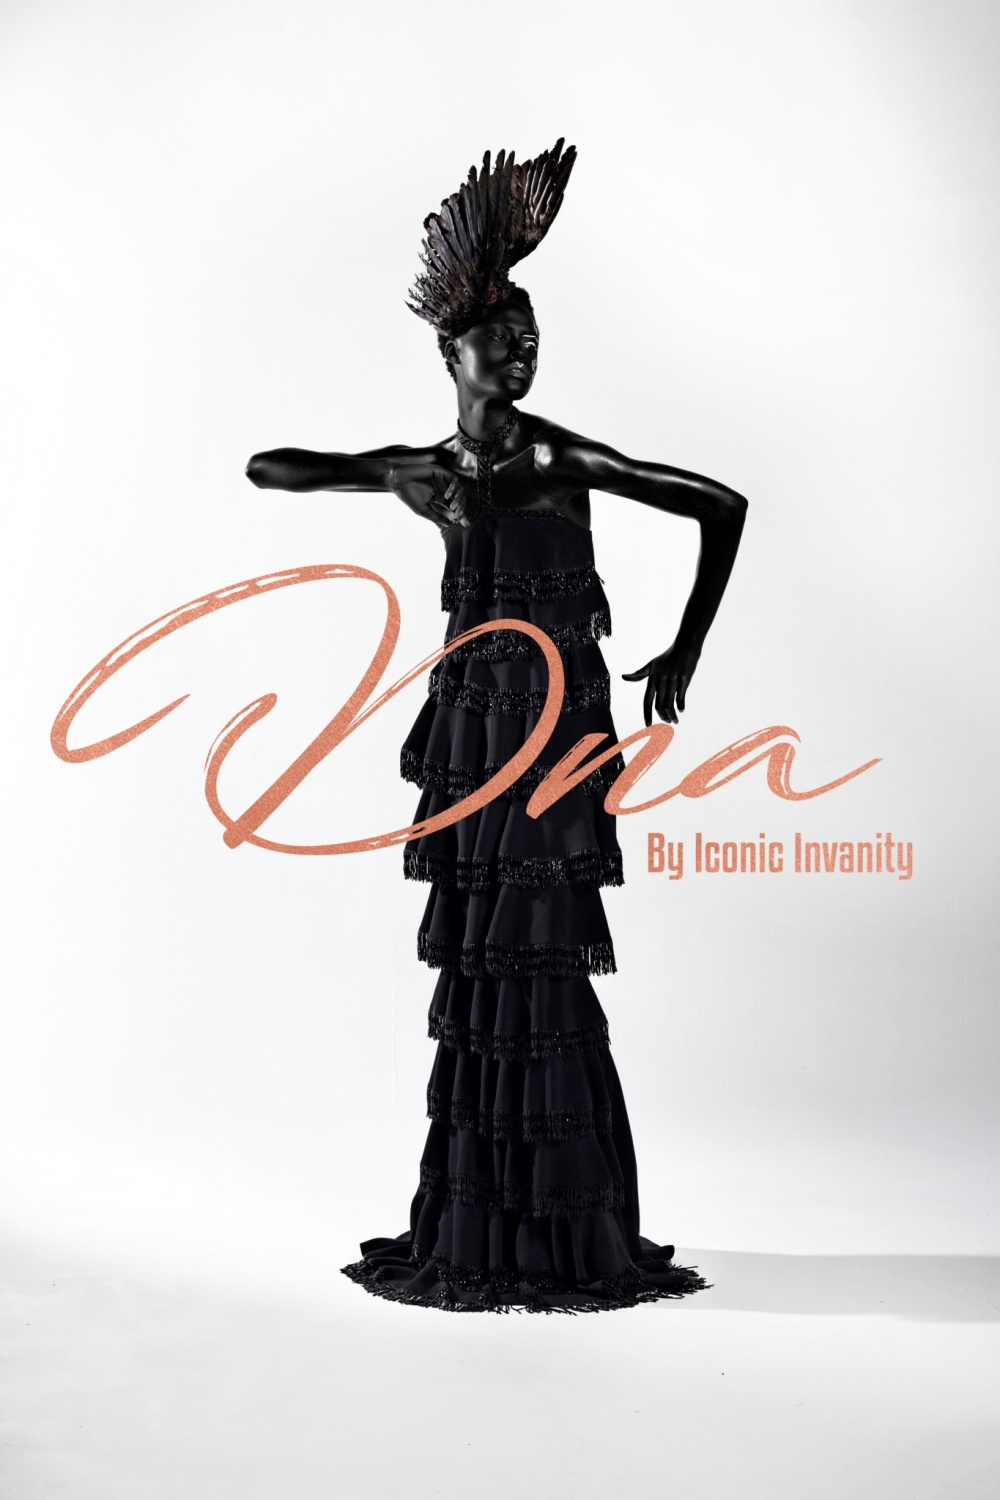 DNA by iconic Invanity